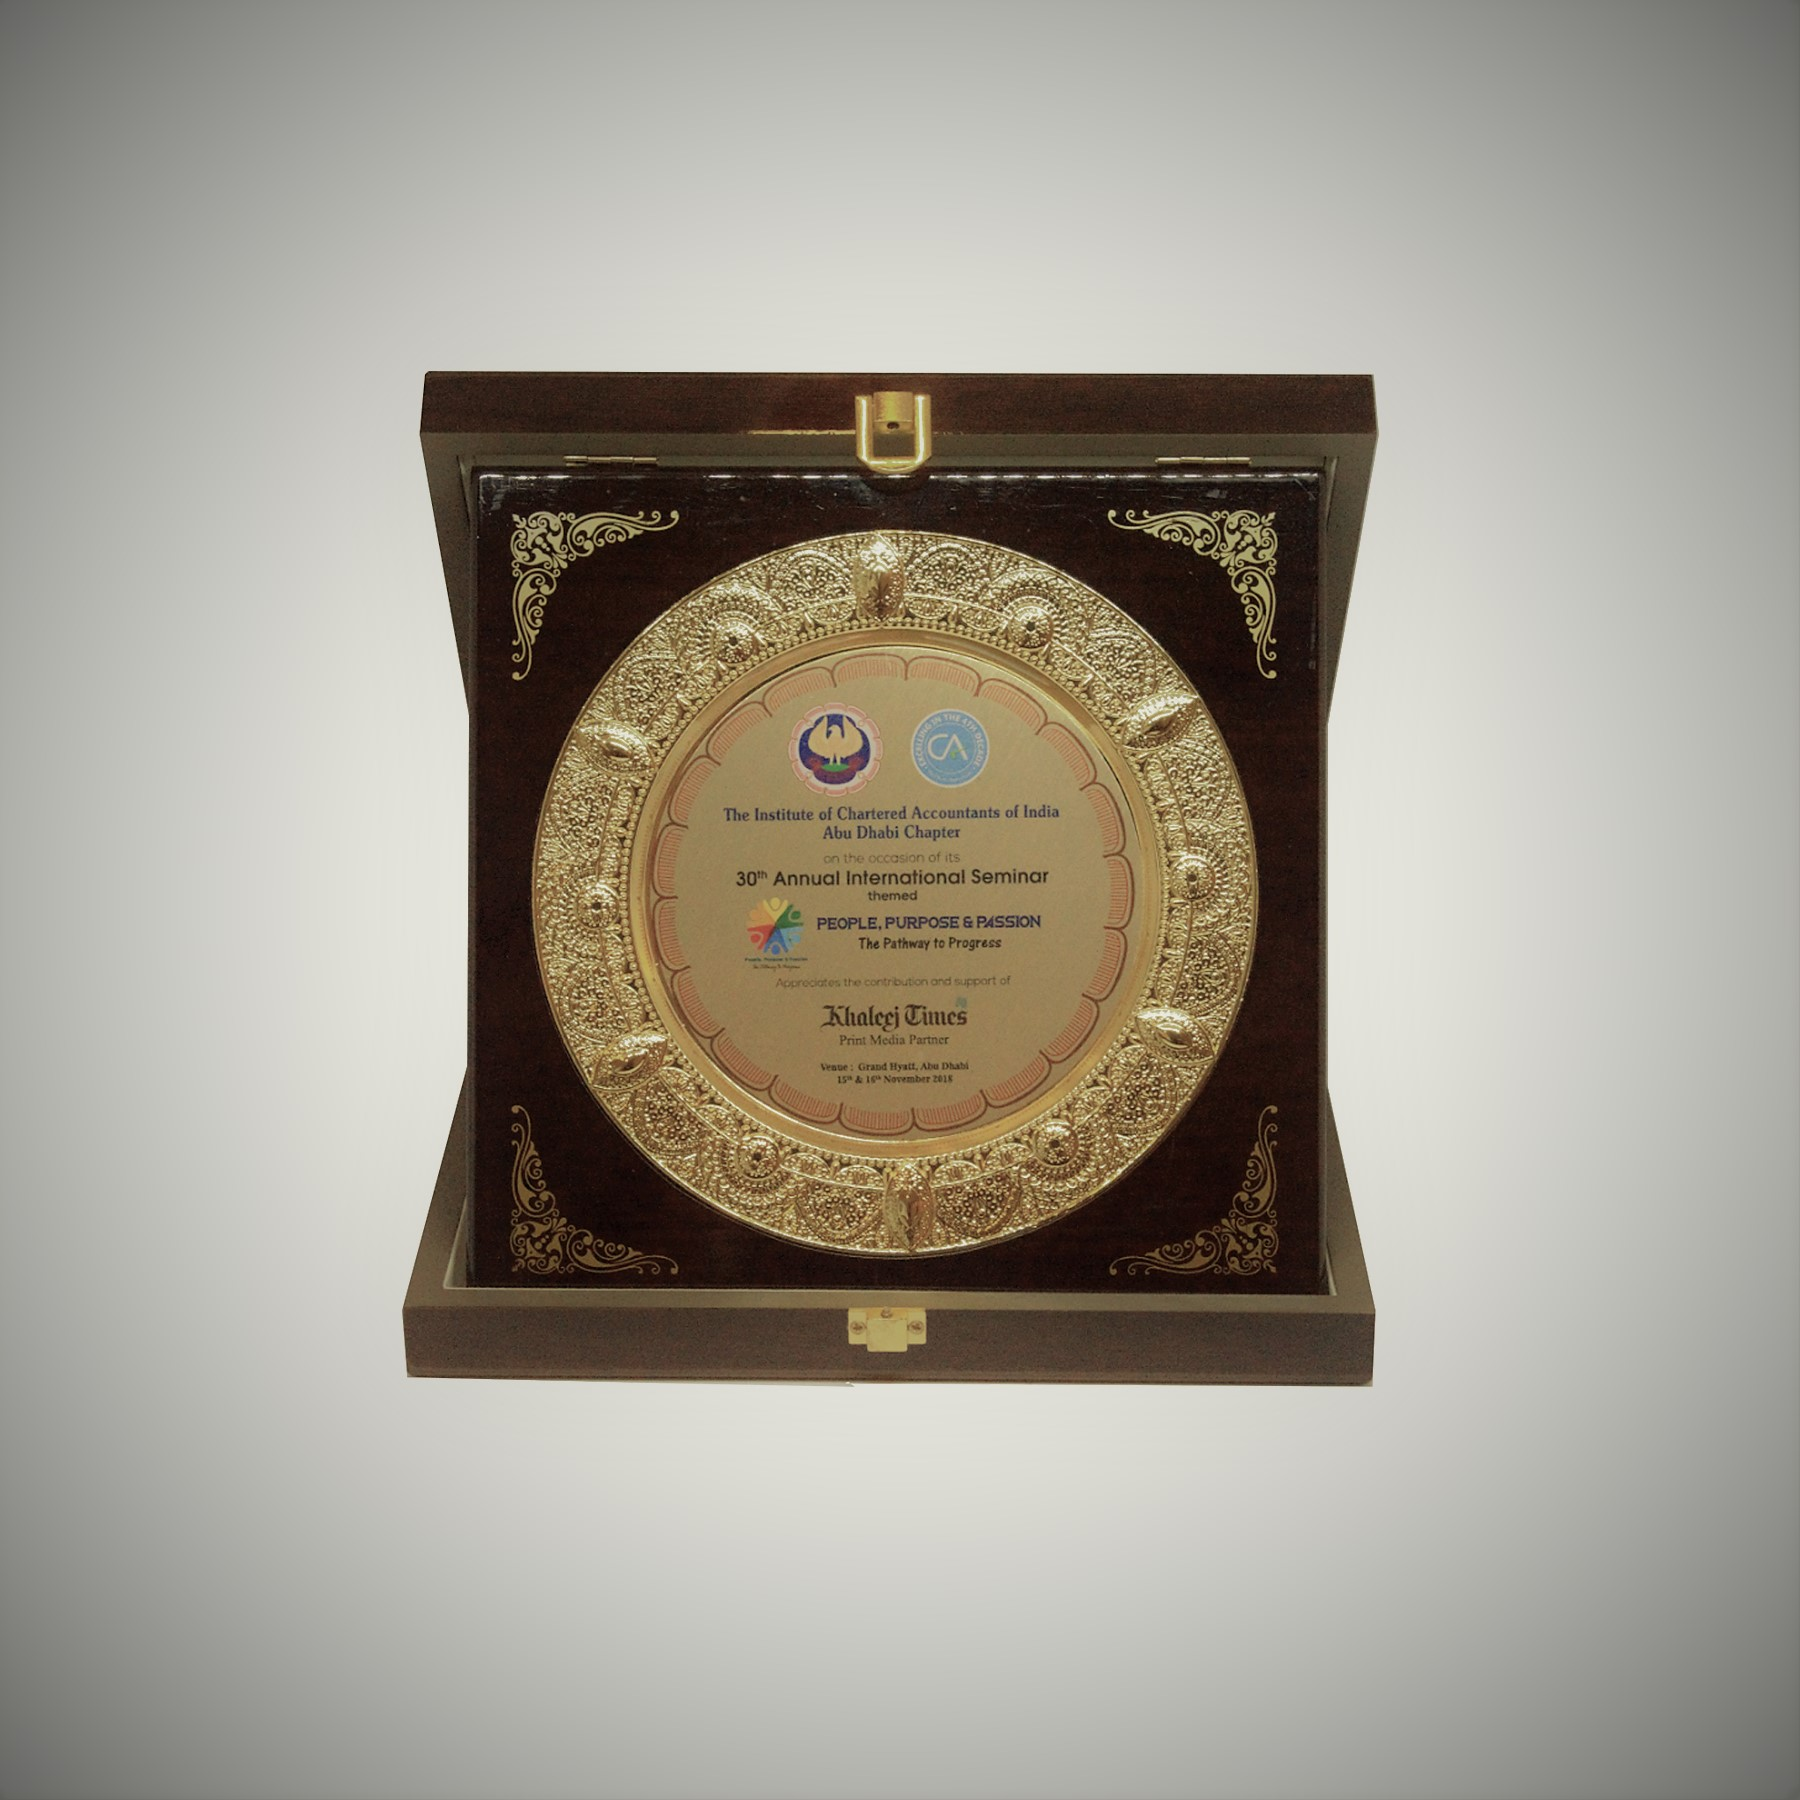 Awarded to Khaleej Times for contribution and support as Print Media Partner during the 30th Annual International Seminar by The Institute of Chartered Accountants of India, Abu Dhabi Chapter, in 2018